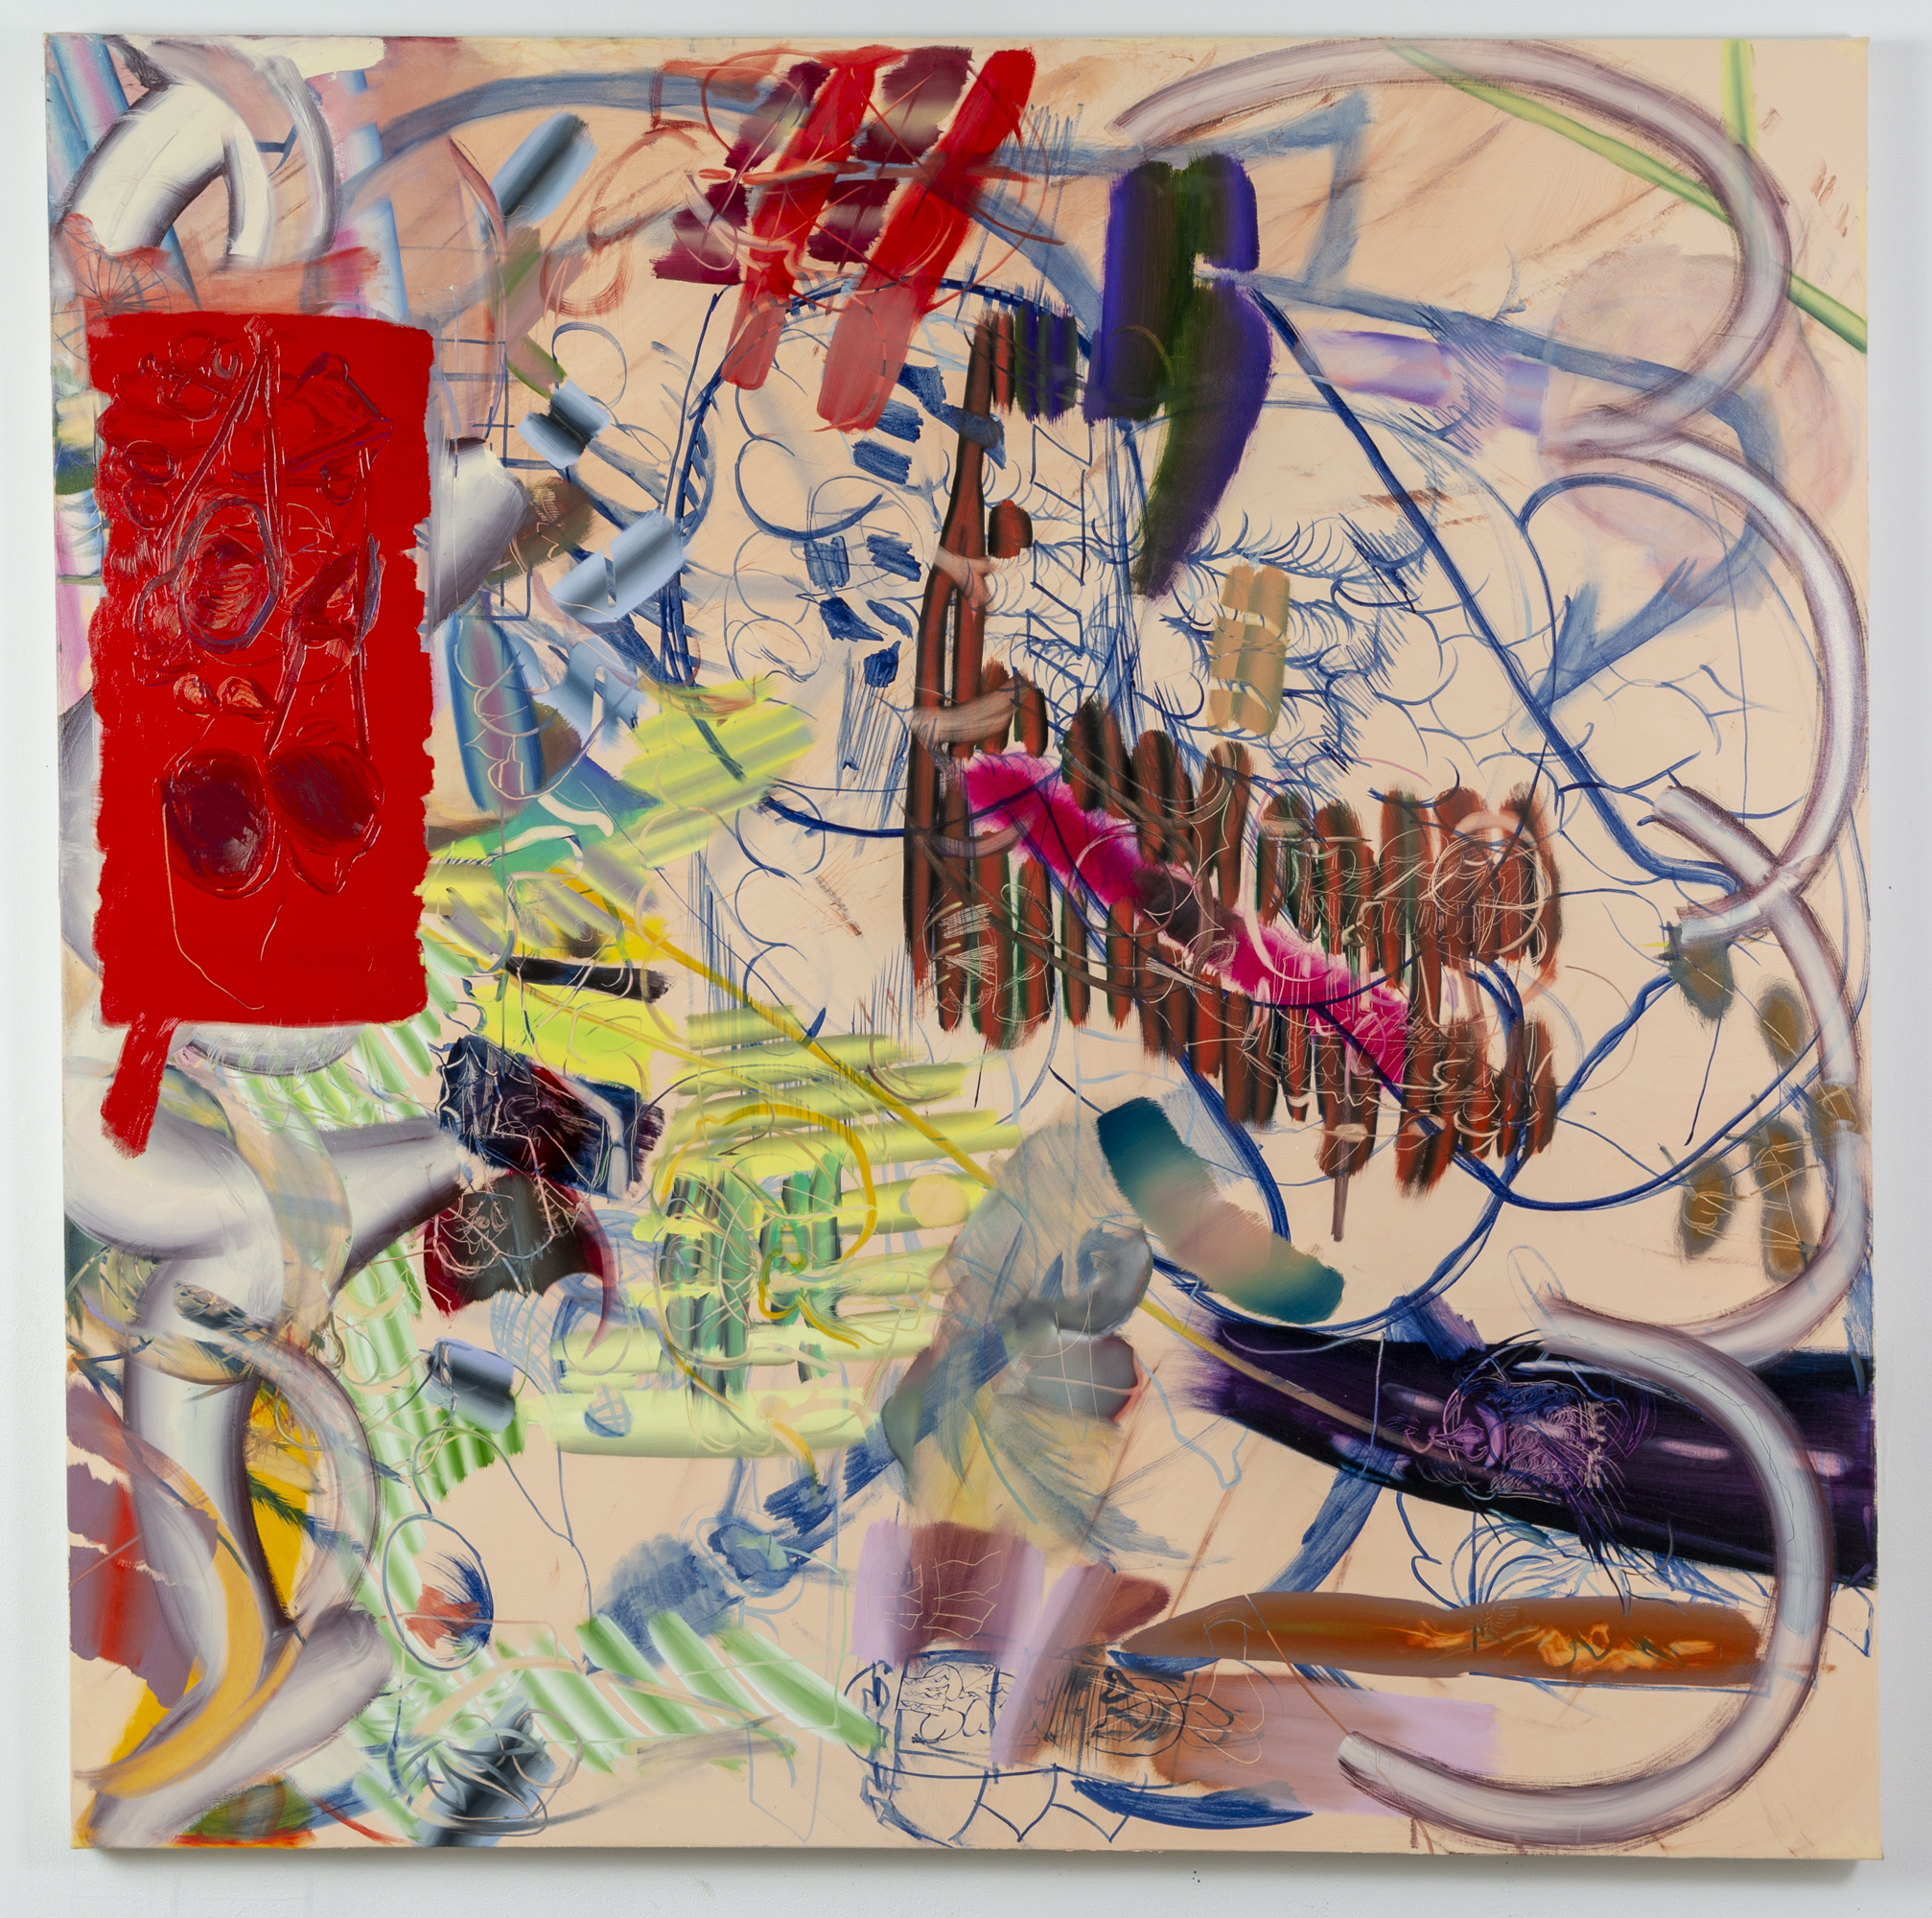 Key, 2019  oil on canvas  72 x 72 inches